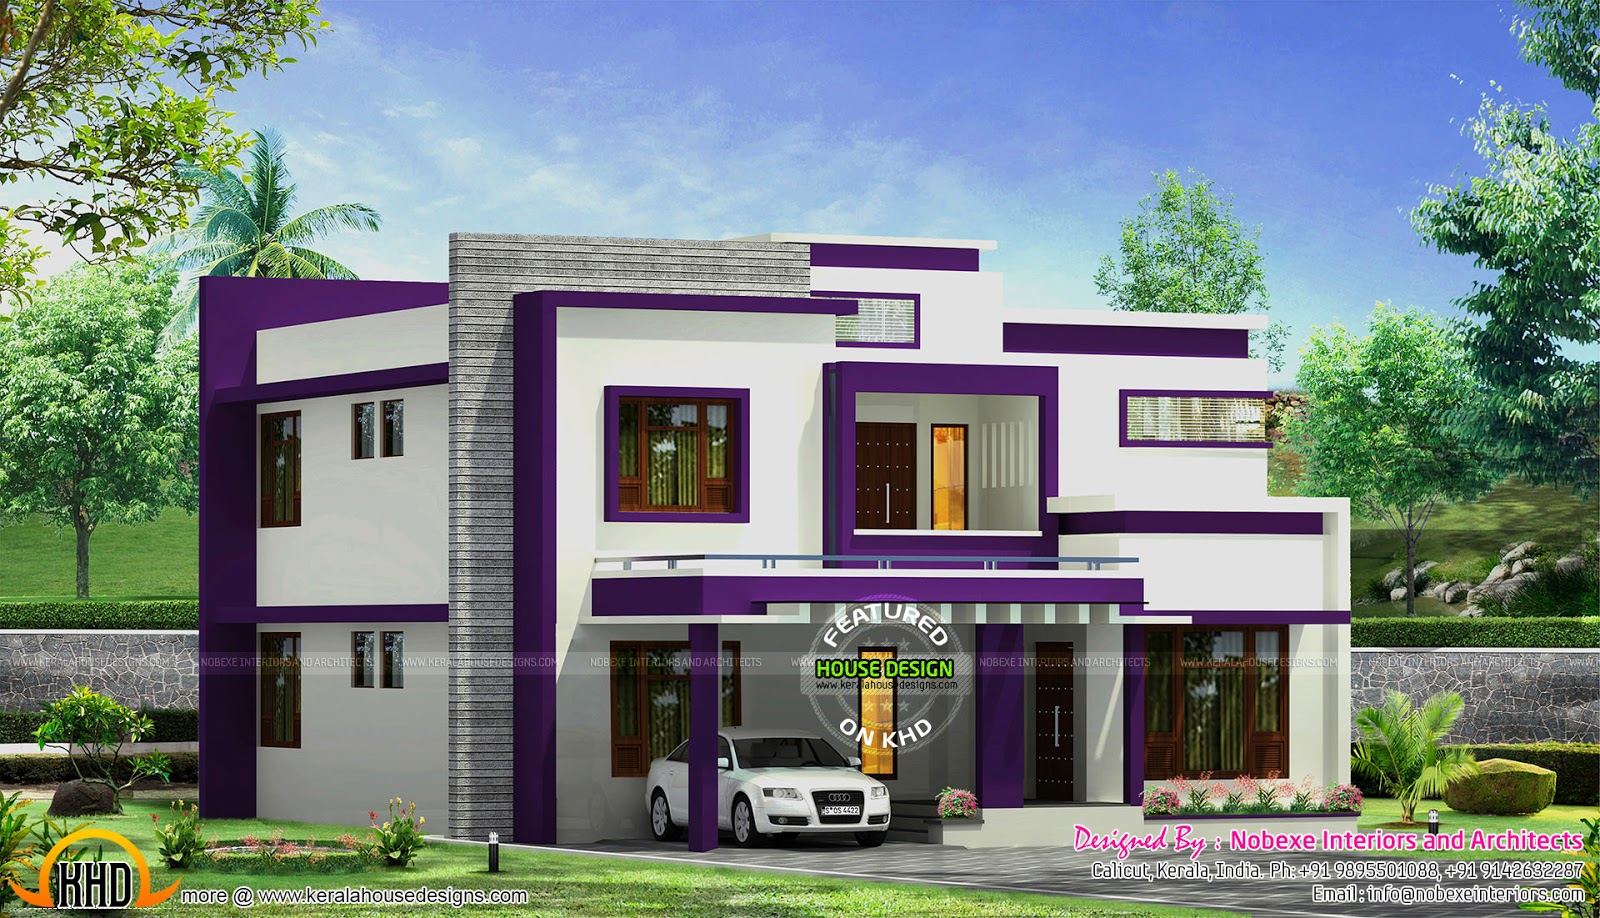 Contemporary home design by nobexe interiors kerala home for Home design ideas contemporary